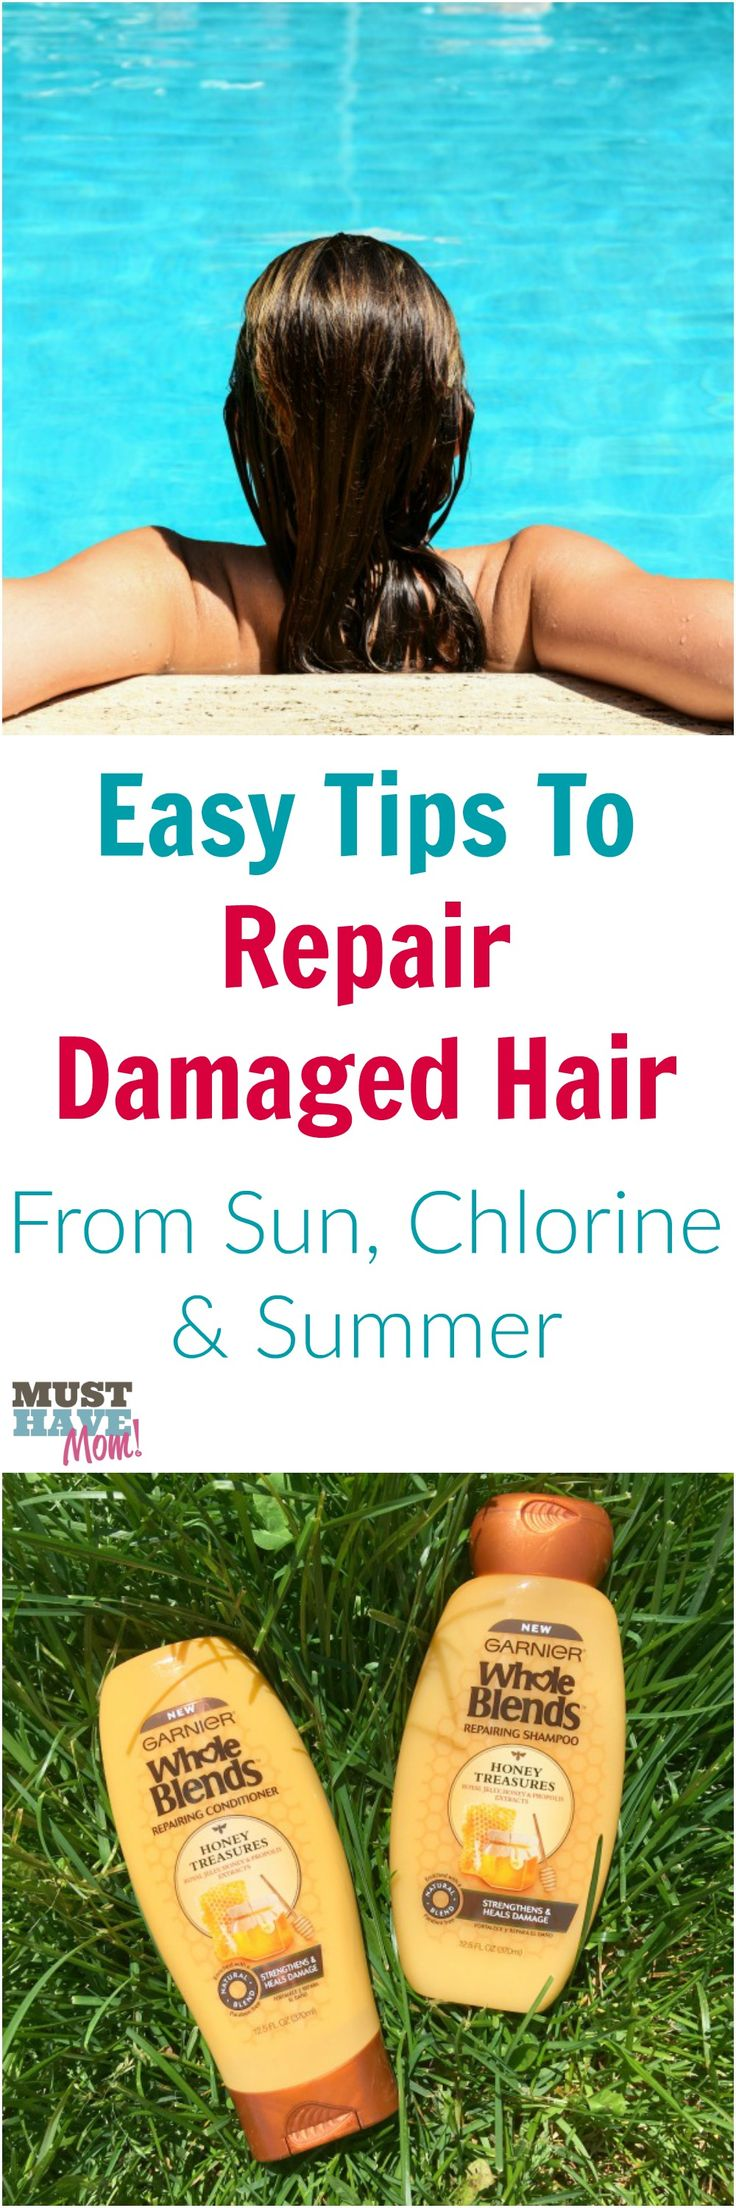 Easy way to repair hair that has been damaged by the sun or chlorine. Summer is hard on hair, use these easy tips to repair and restore your hair!